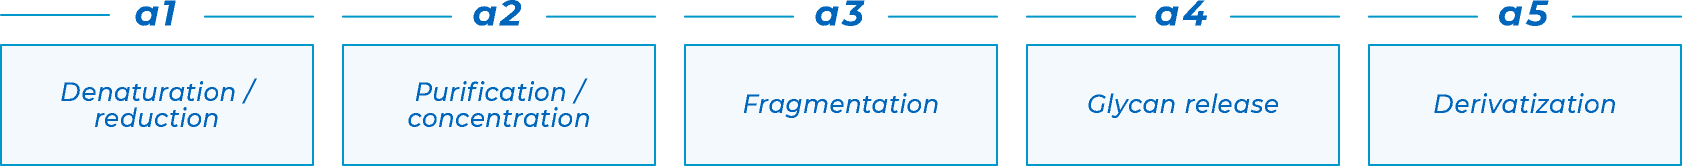 a1.Denaturation / reduction a2.Purification / concentration a3.Fragmentation a4.Glycan release a5.Derivatization